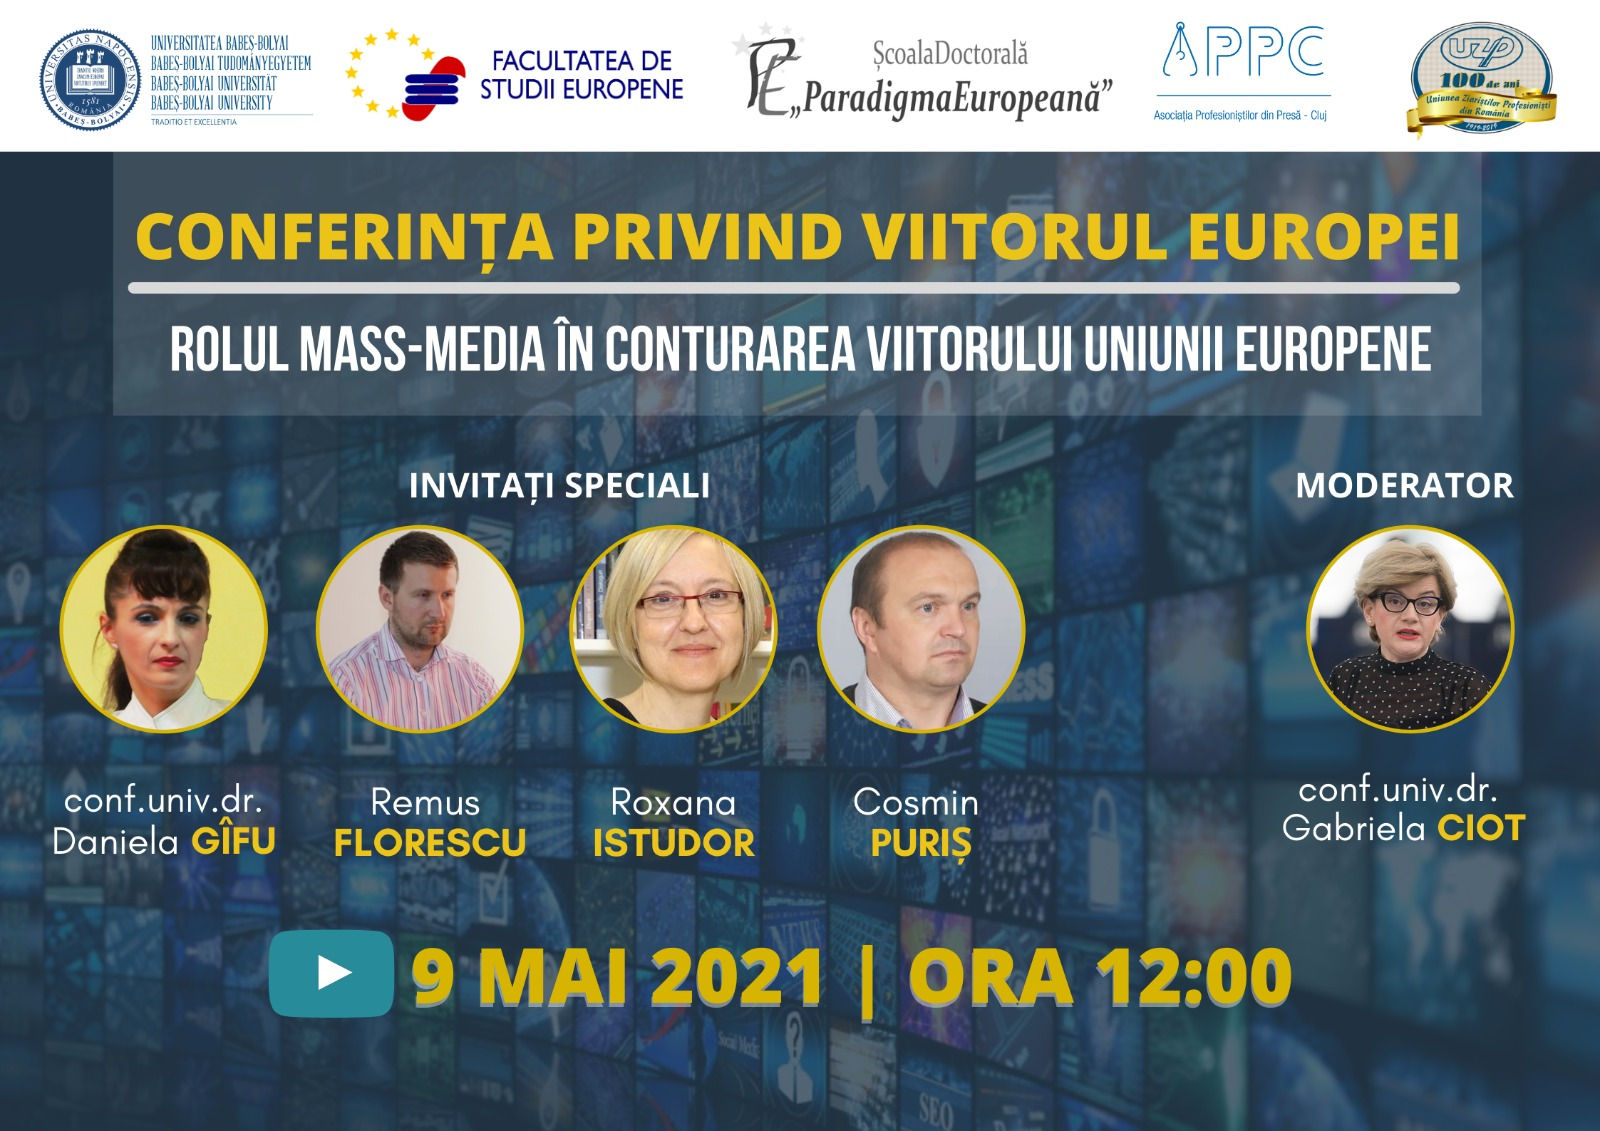 The role of the media in shaping the future of the European Union